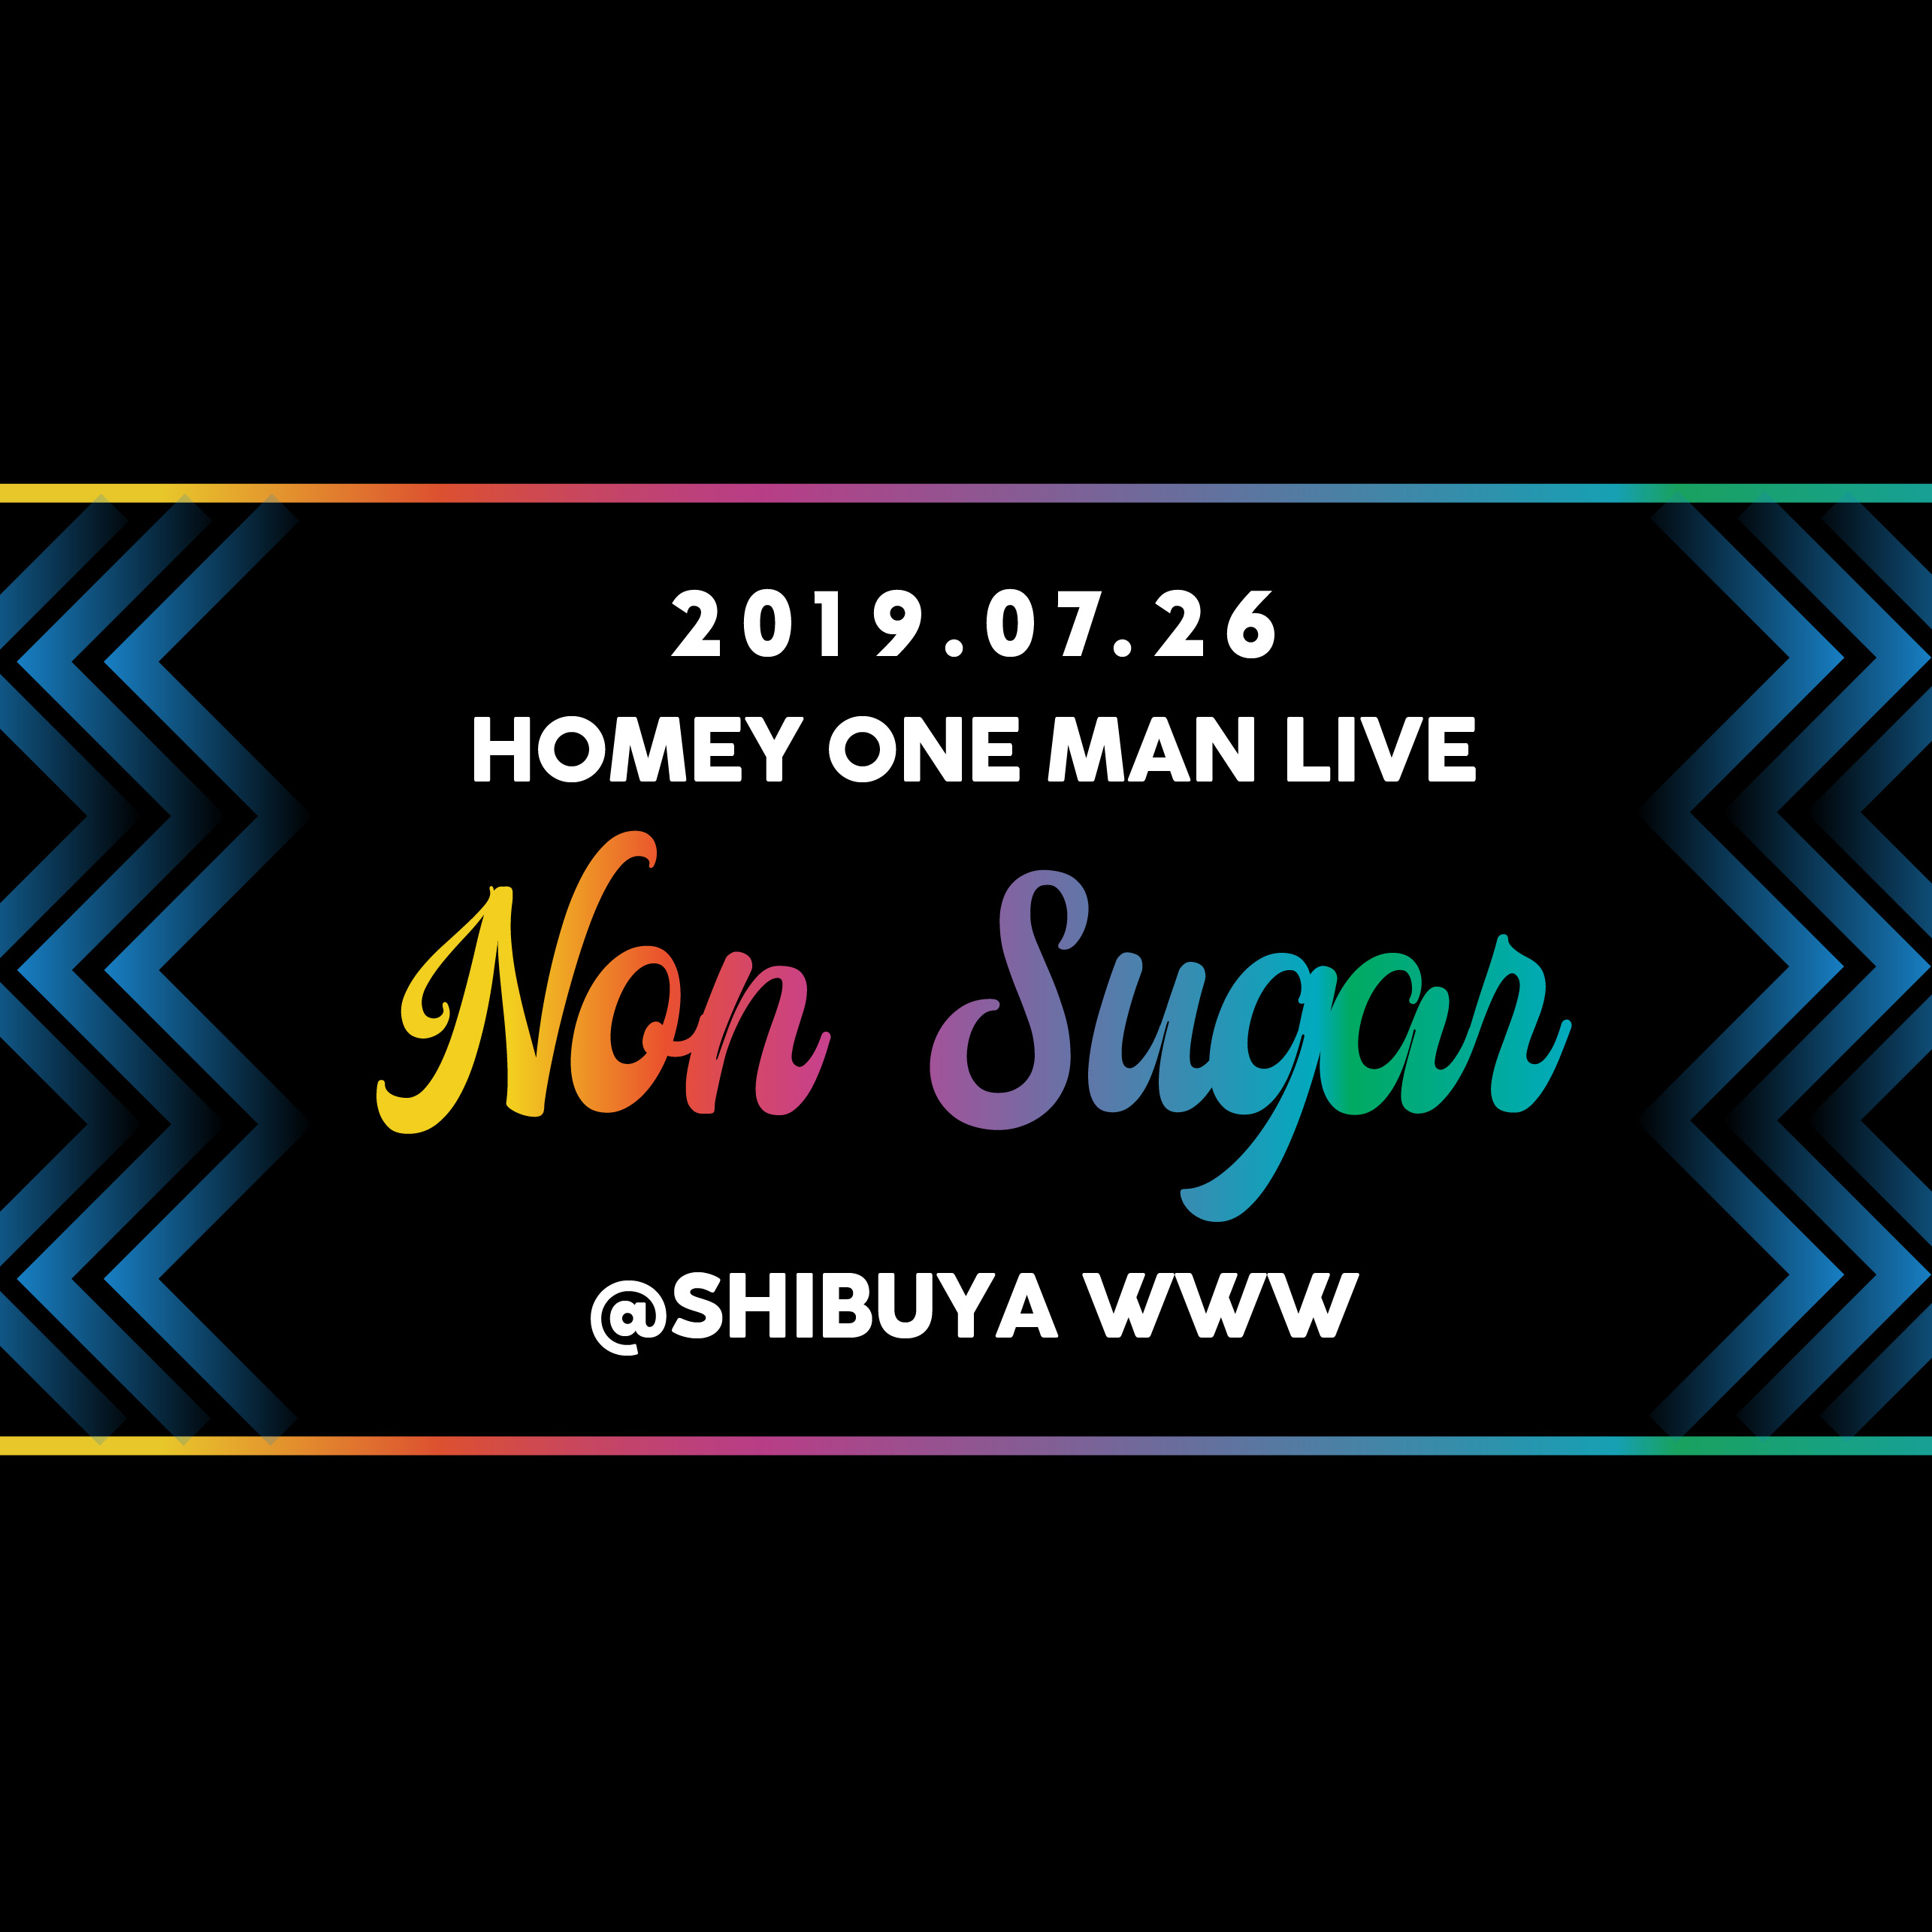 HOMEY ONE MAN LIVE 【Non Sugar】